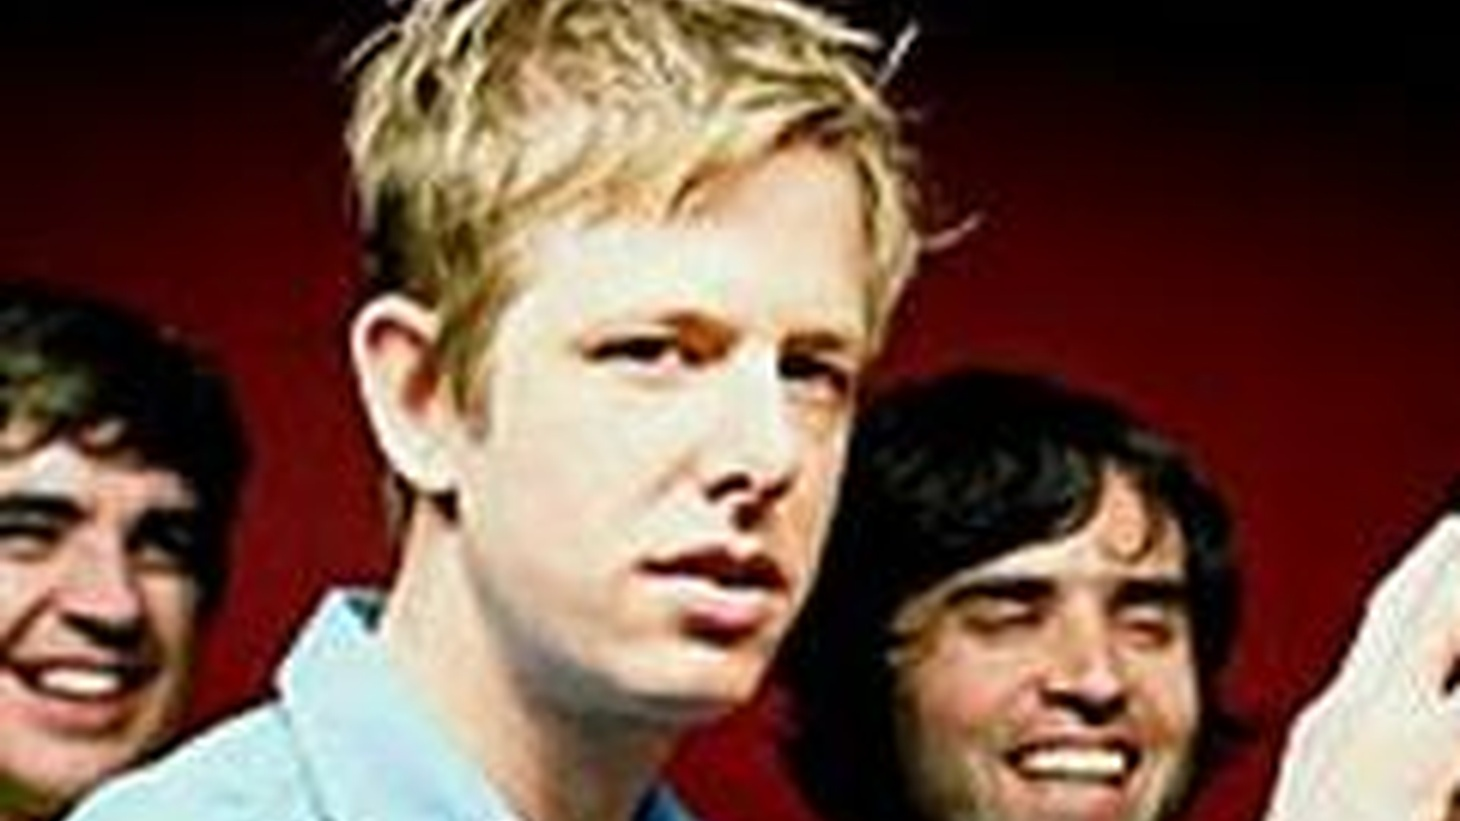 Austin's finest, Spoon, return to perform songs from their newest recording on Morning Becomes Eclectic at 11:15am.